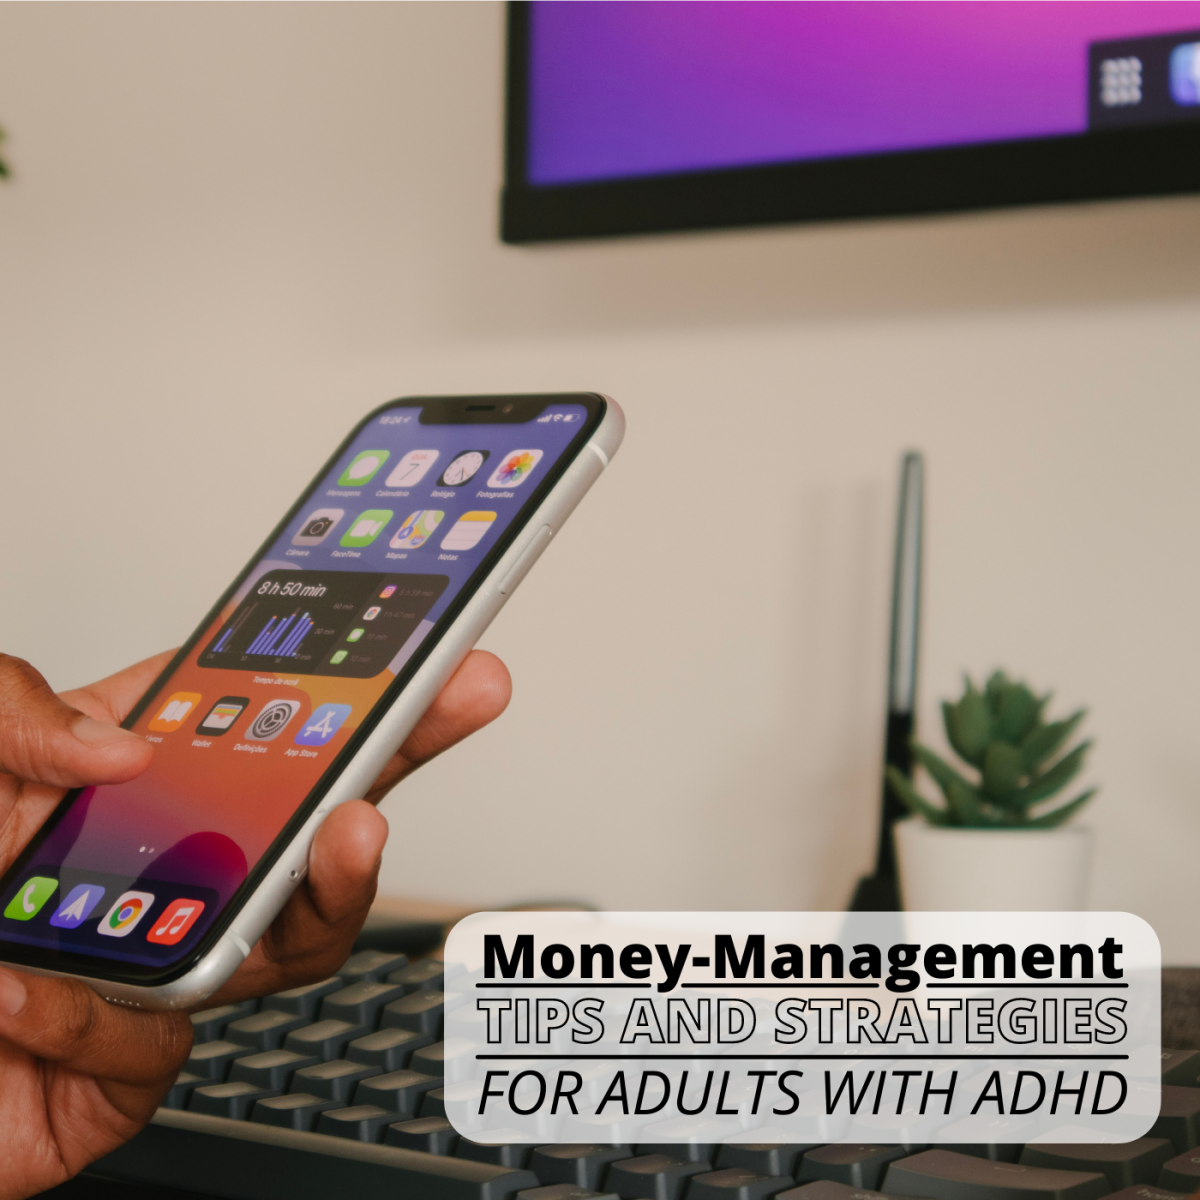 ADHD symptoms can make financial planning and money management difficult.